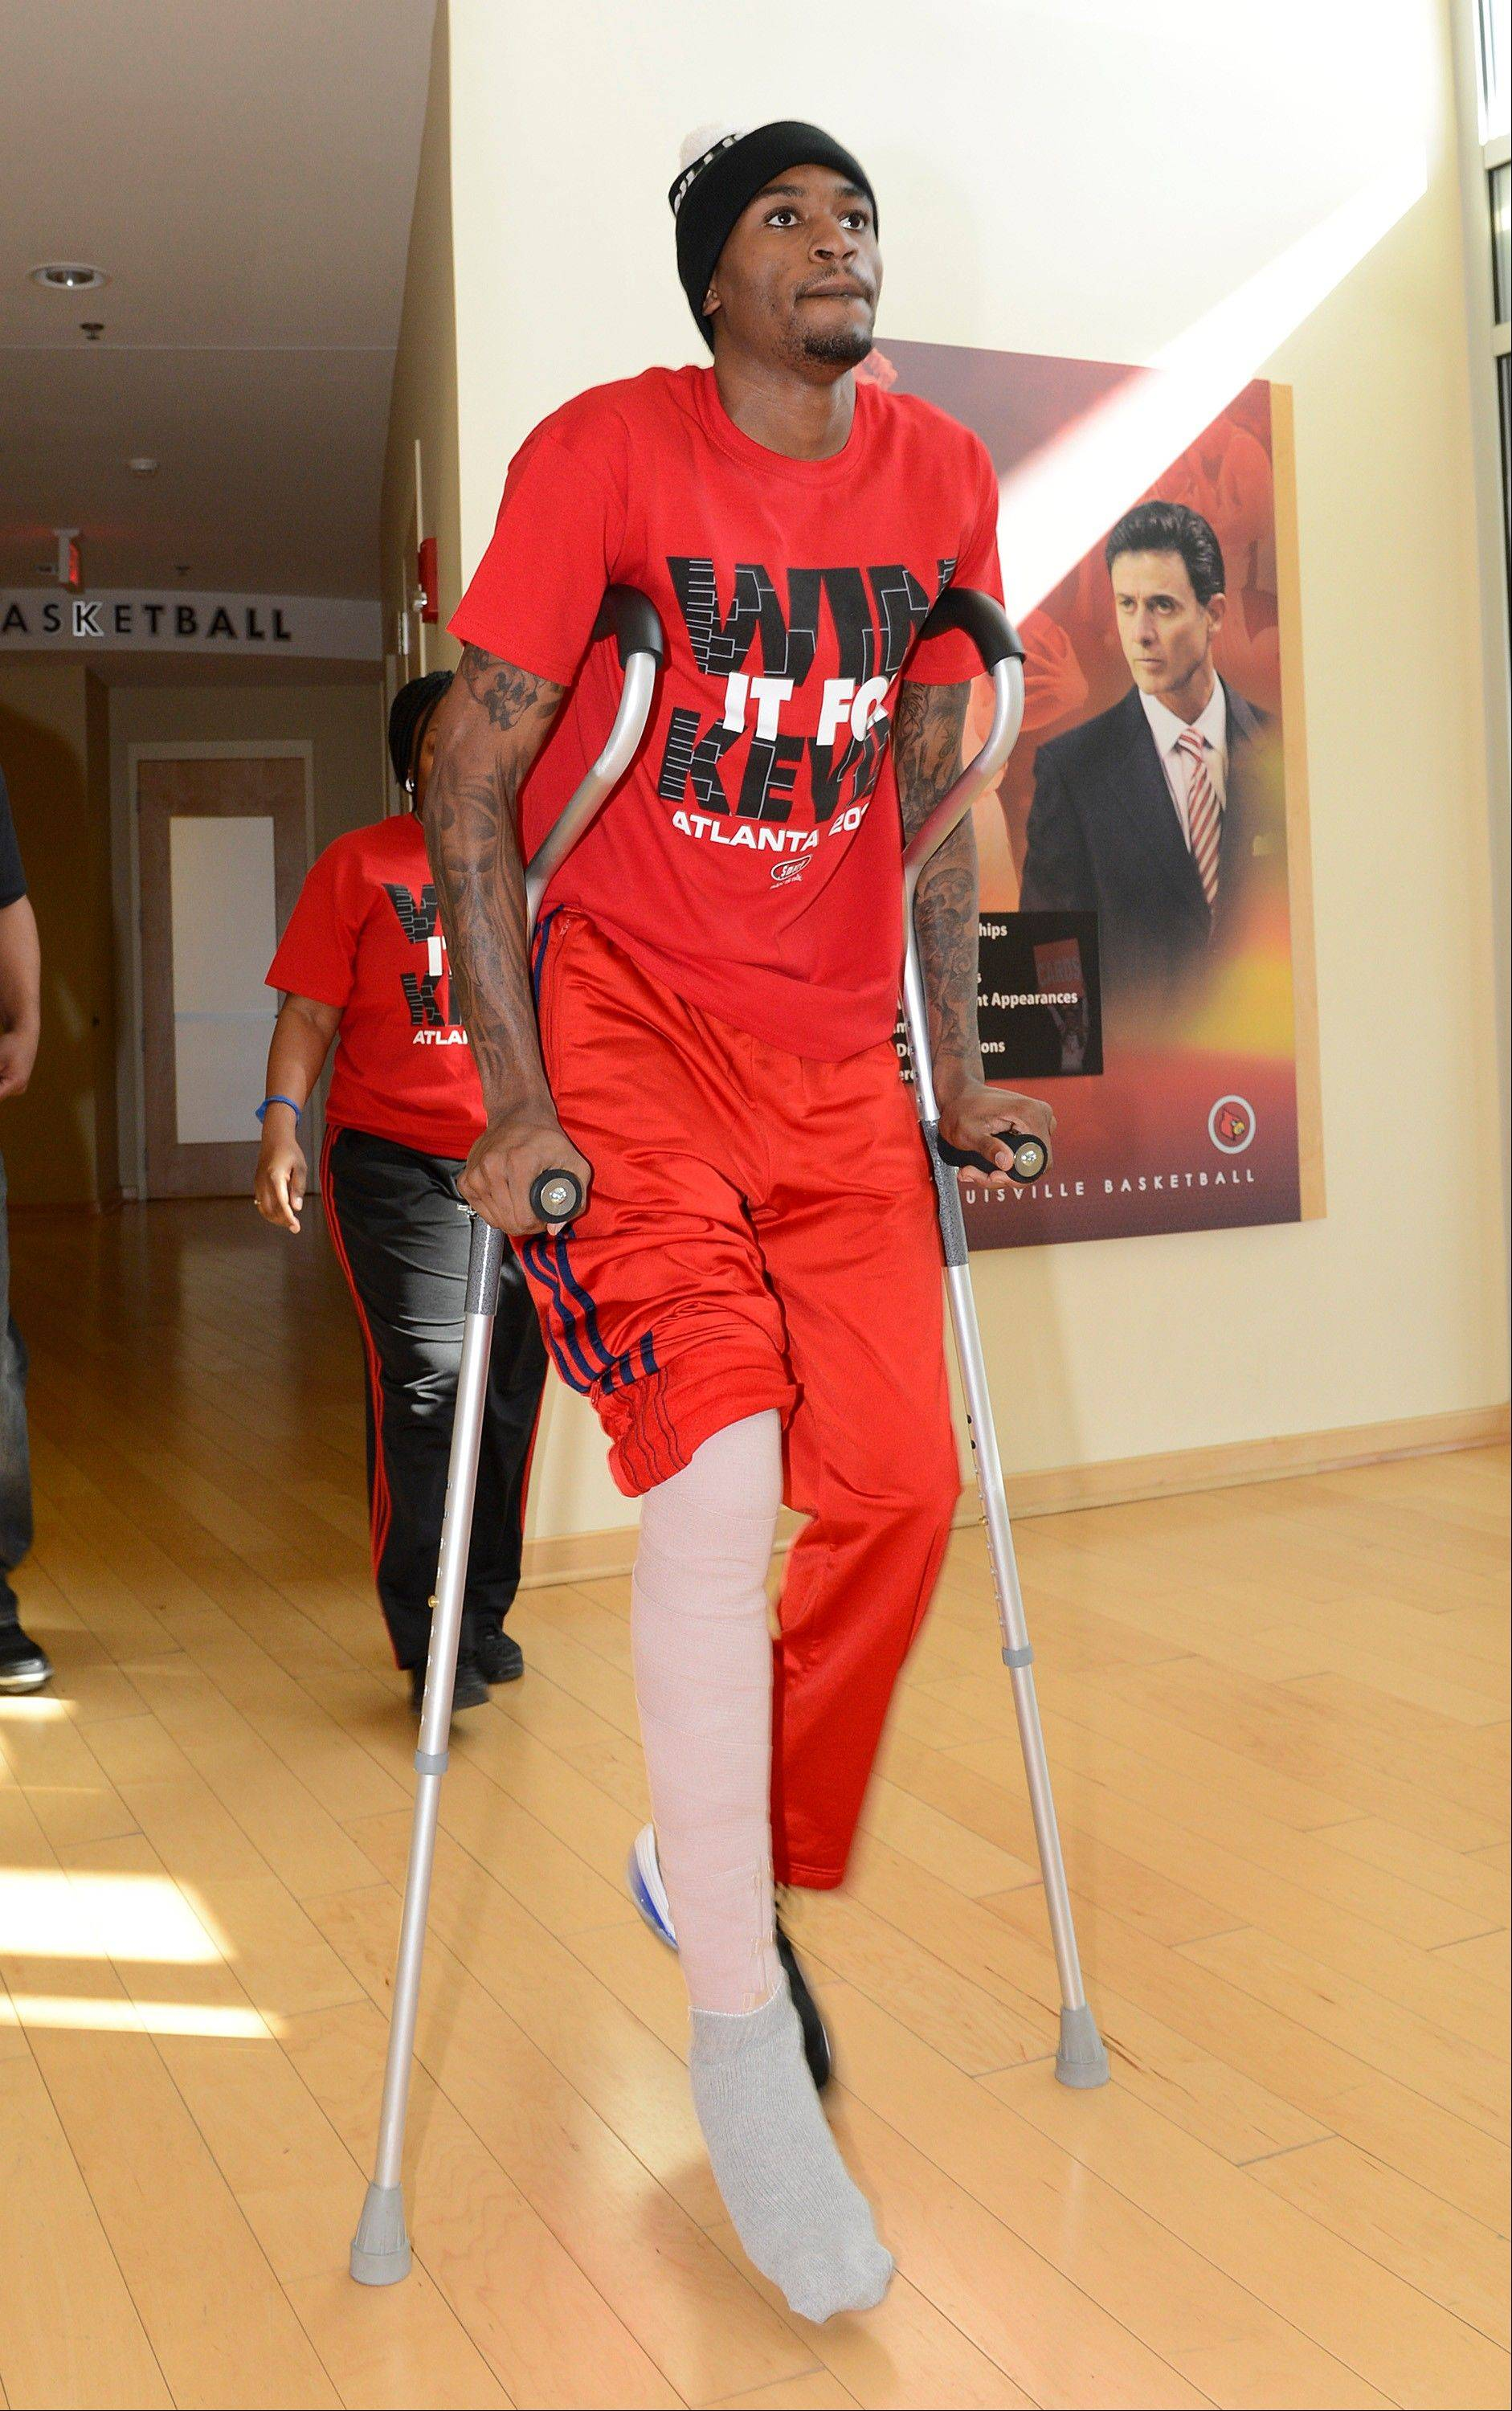 Louisville basketball player Kevin Ware arrives for an interview Wednesday April 3, 2013, at the KFC Yum! Center practice facility in Louisville, Ky. Ware was released from an Indianapolis hospital Tuesday, two days after millions watched him break his right leg on a horrifying play trying to block a shot during an NCAA college basketball regional championship game against Duke.